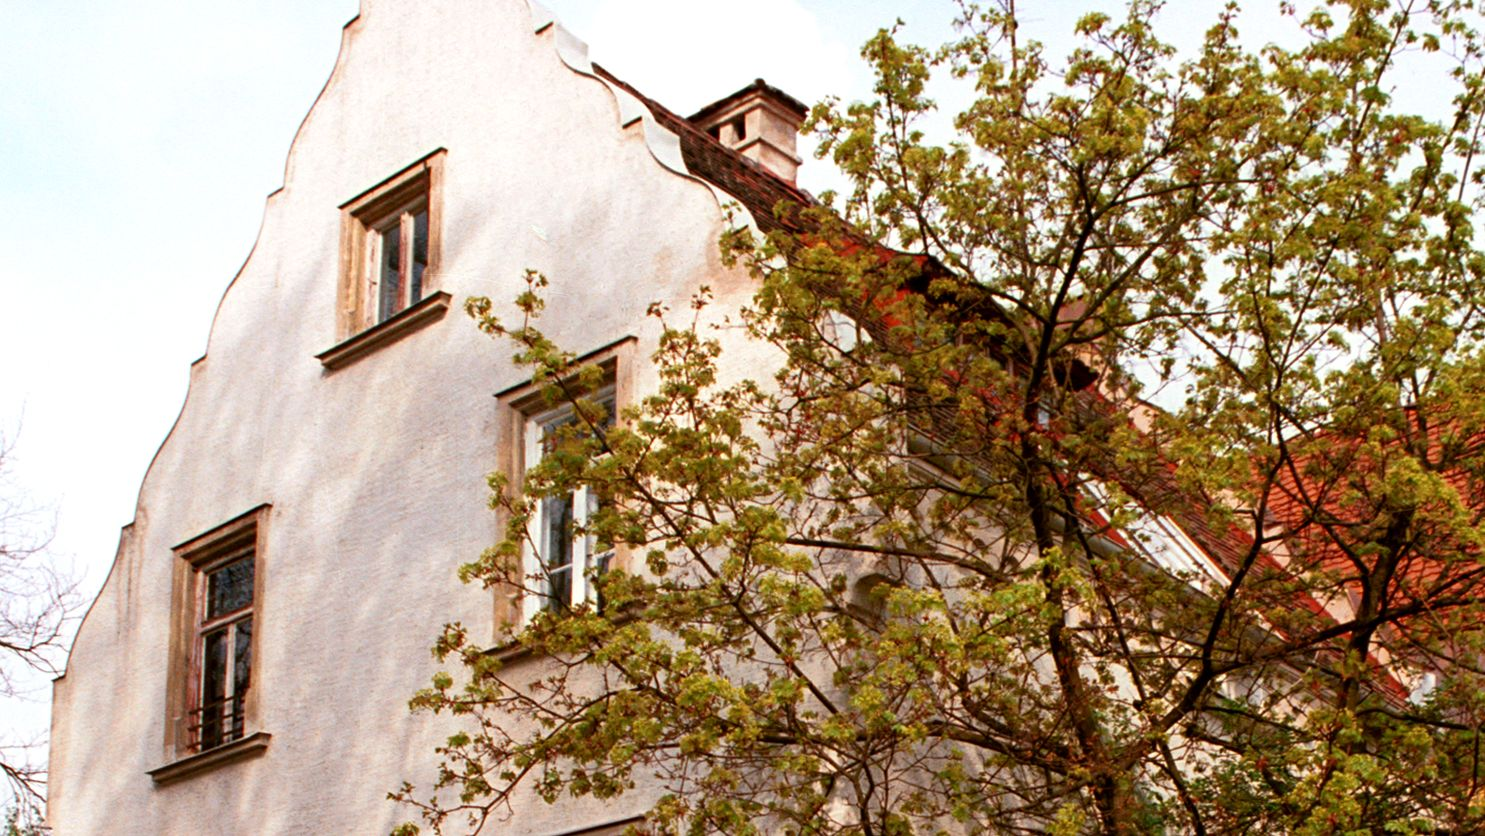 Artists´ House of Hans von Hayek, white, gable-fronted house. Picture: City of Dachau, Peter Riester